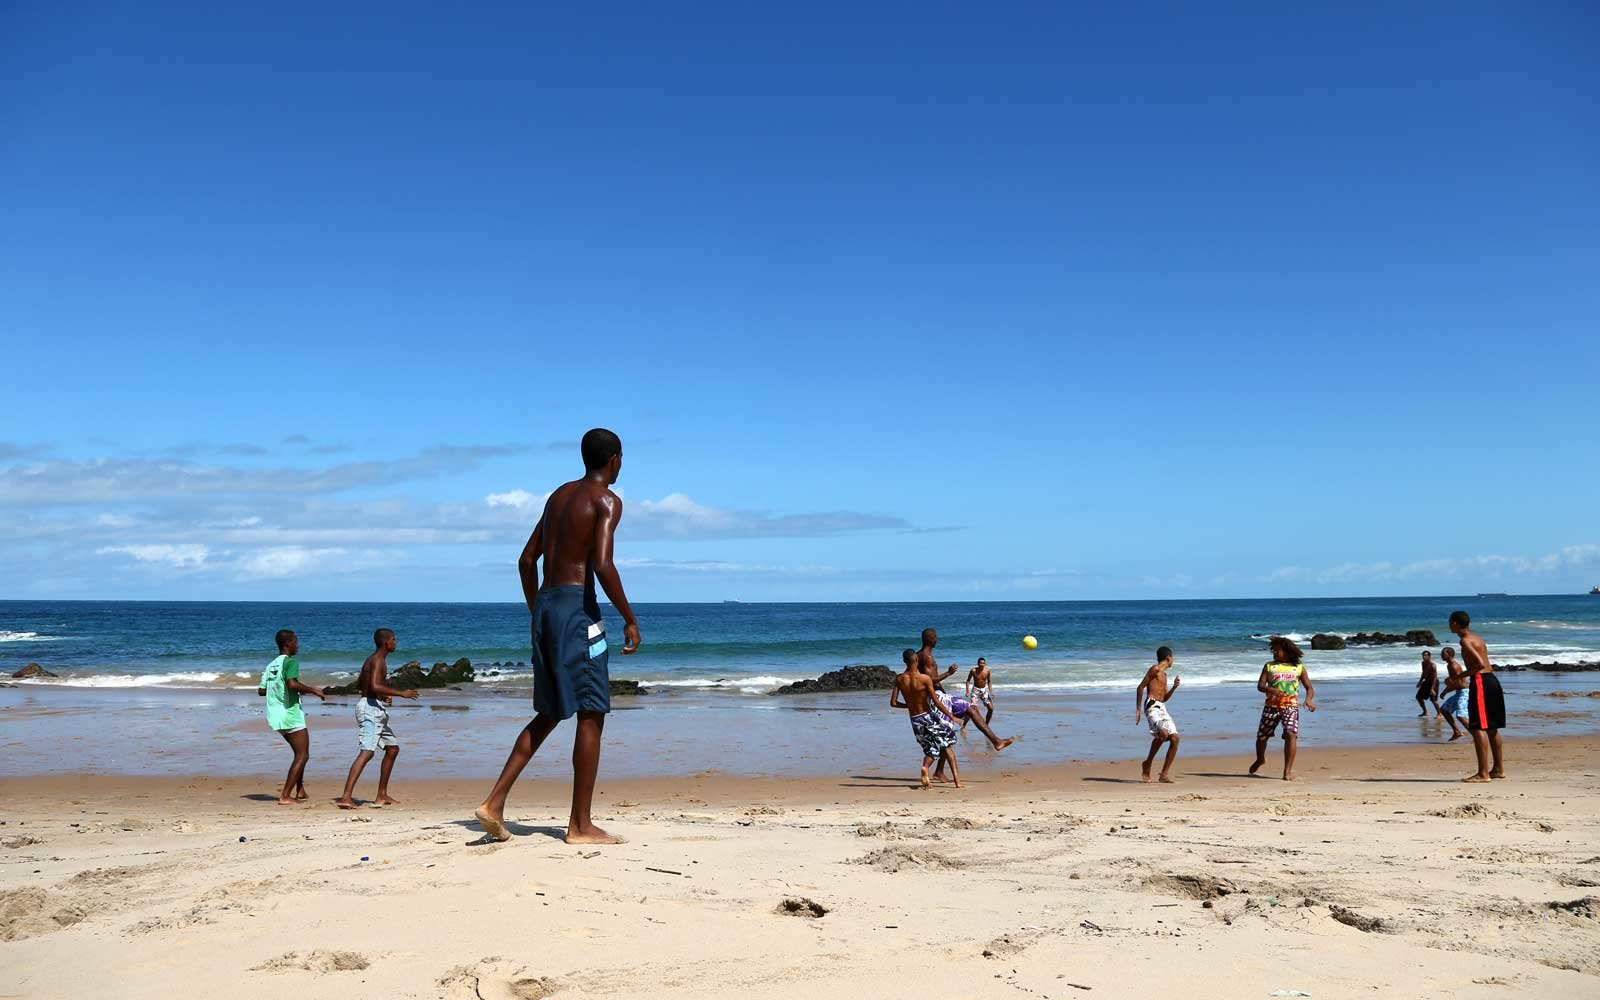 Locals play beach football on a Sunday morning along the Praia do Farol da Barra - Lighthouse beach